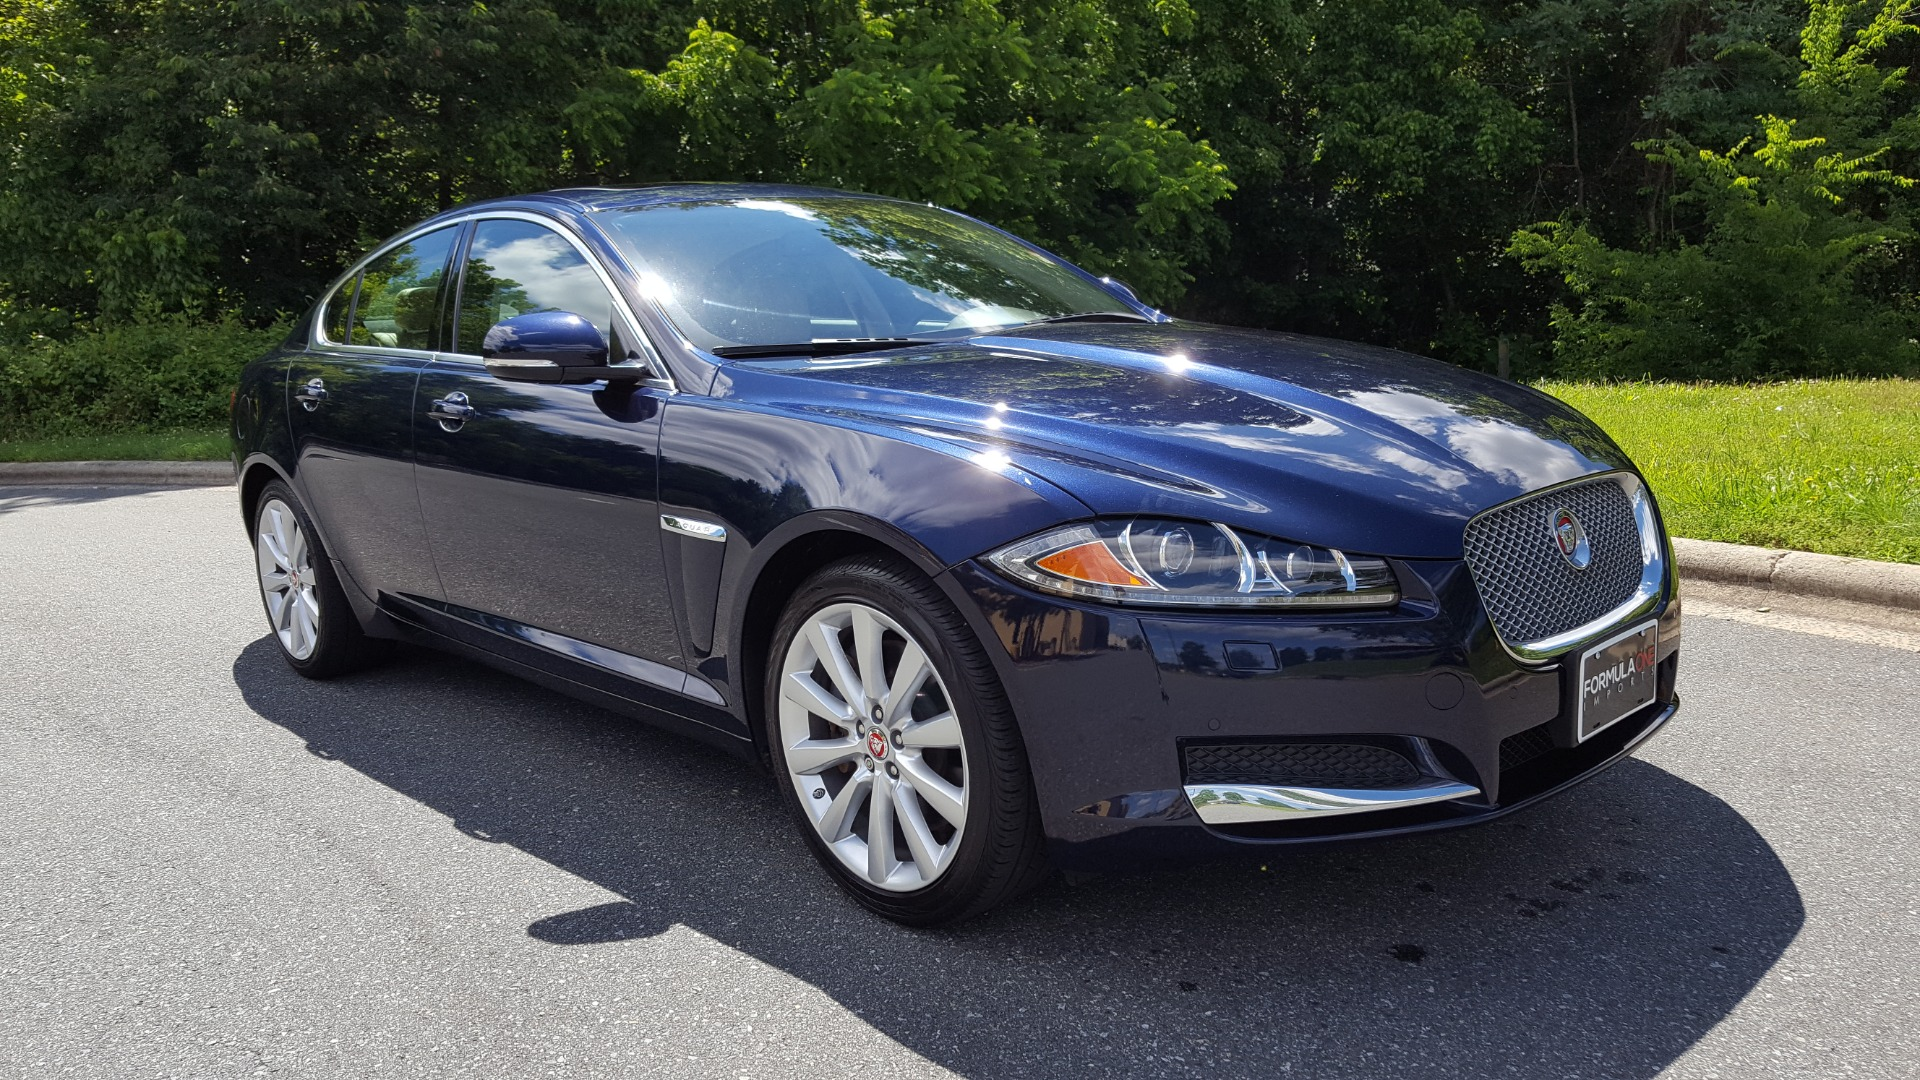 Used 2014 Jaguar XF V6 SC AWD PREMIUM / NAV / COLD CLIMATE PKG / VISION / REARVIEW for sale $18,995 at Formula Imports in Charlotte NC 28227 8